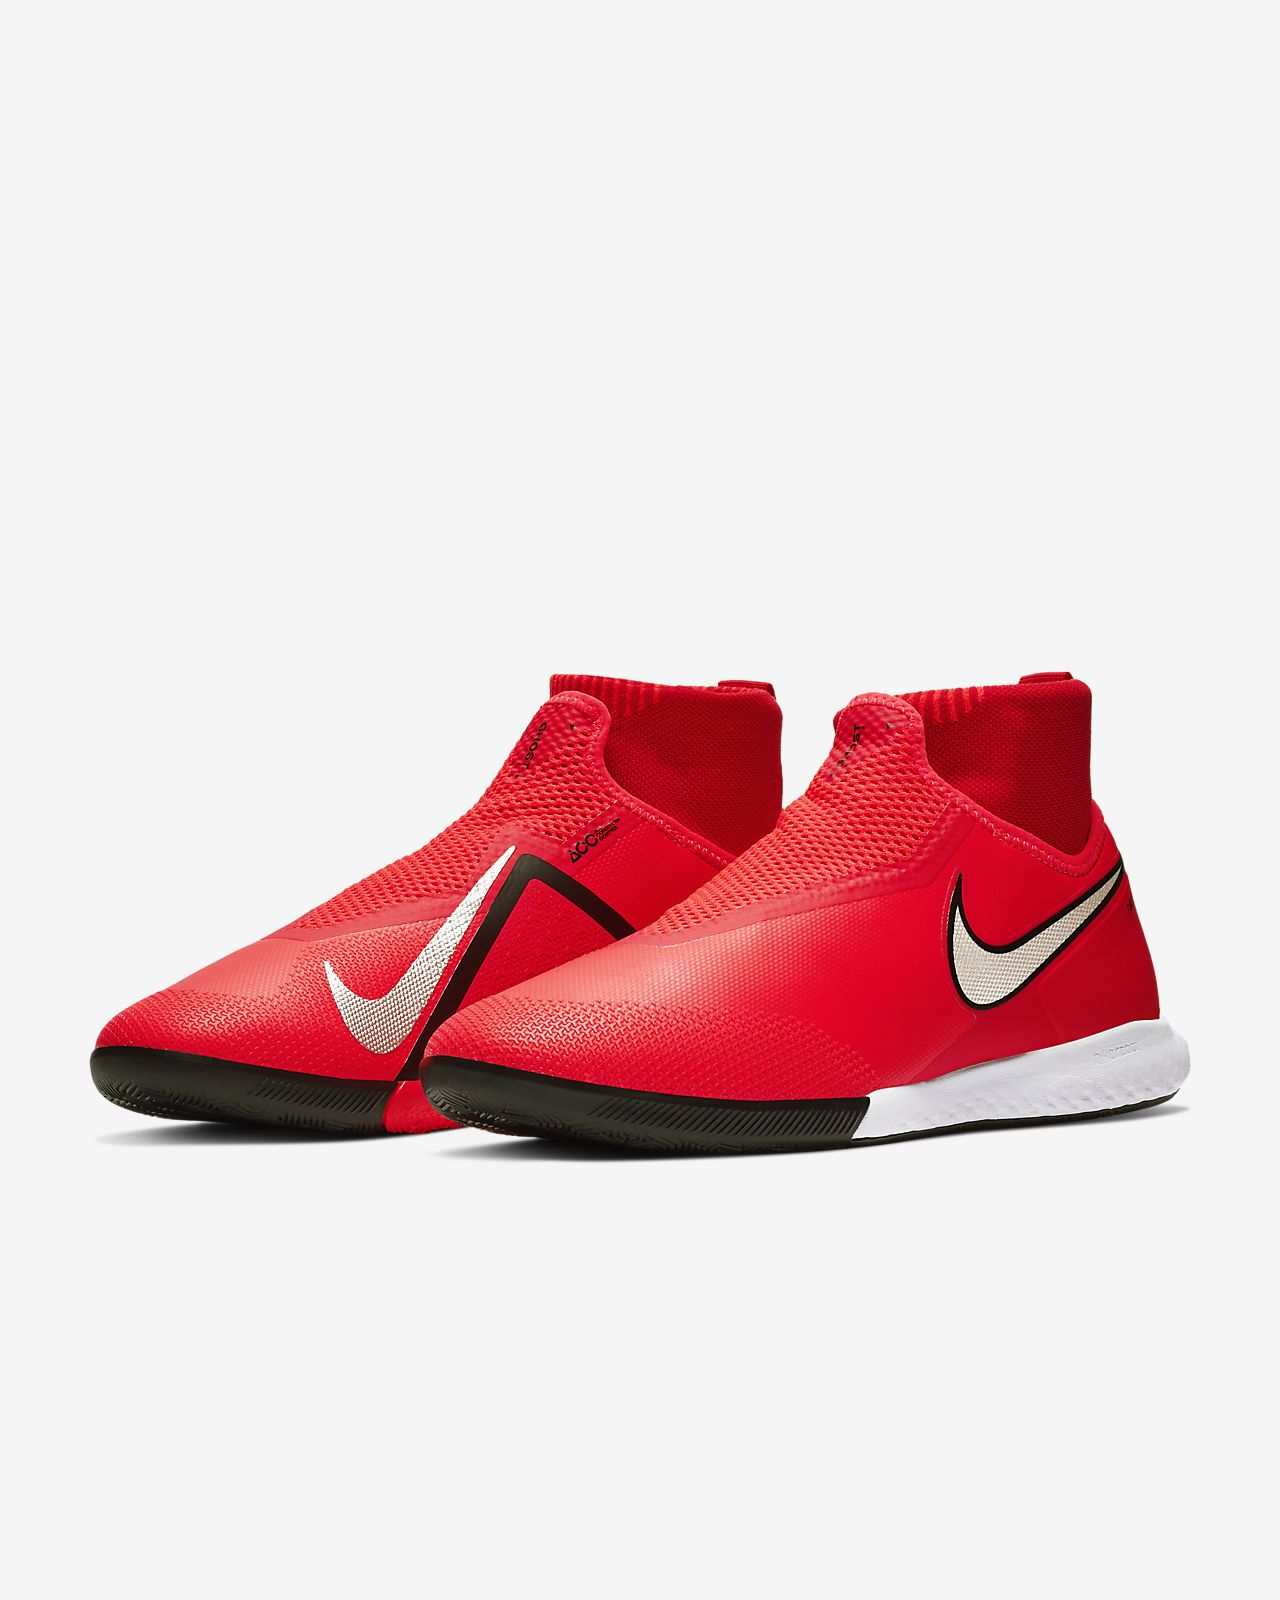 cea9f626c135 ... Nike React PhantomVSN Pro Dynamic Fit Game Over IC Indoor Court Football  Boot